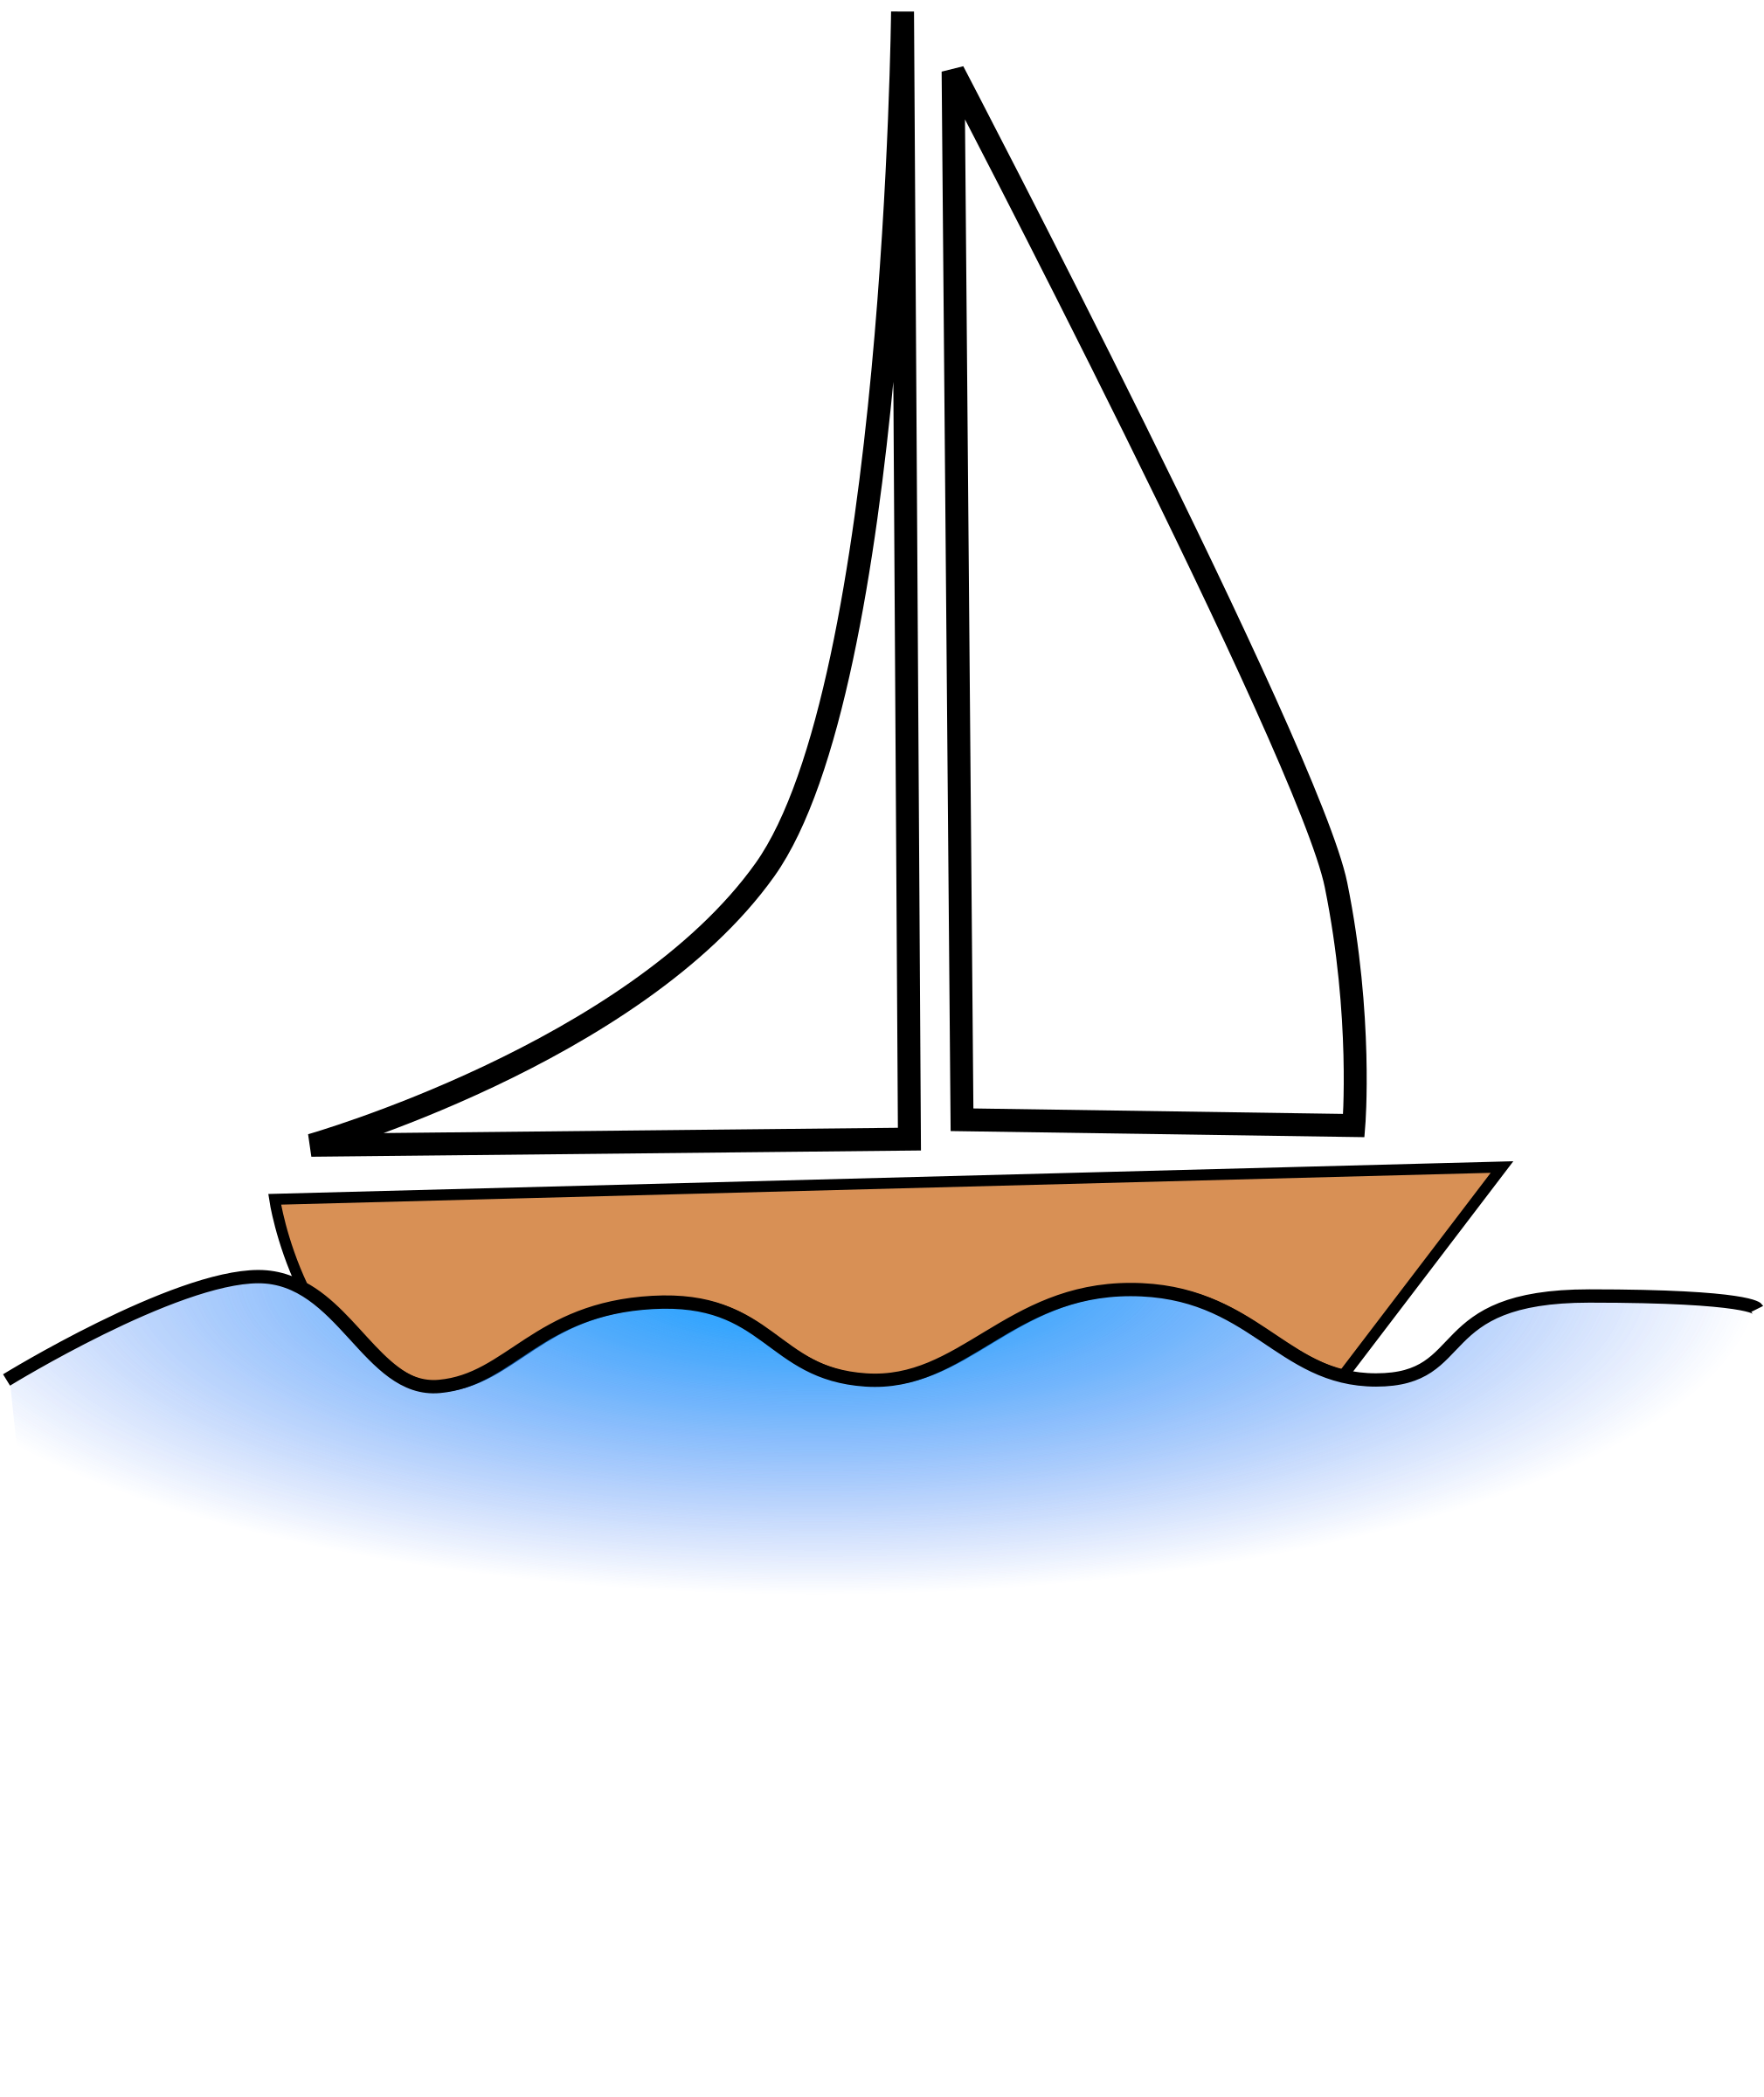 river boat clipart - photo #37